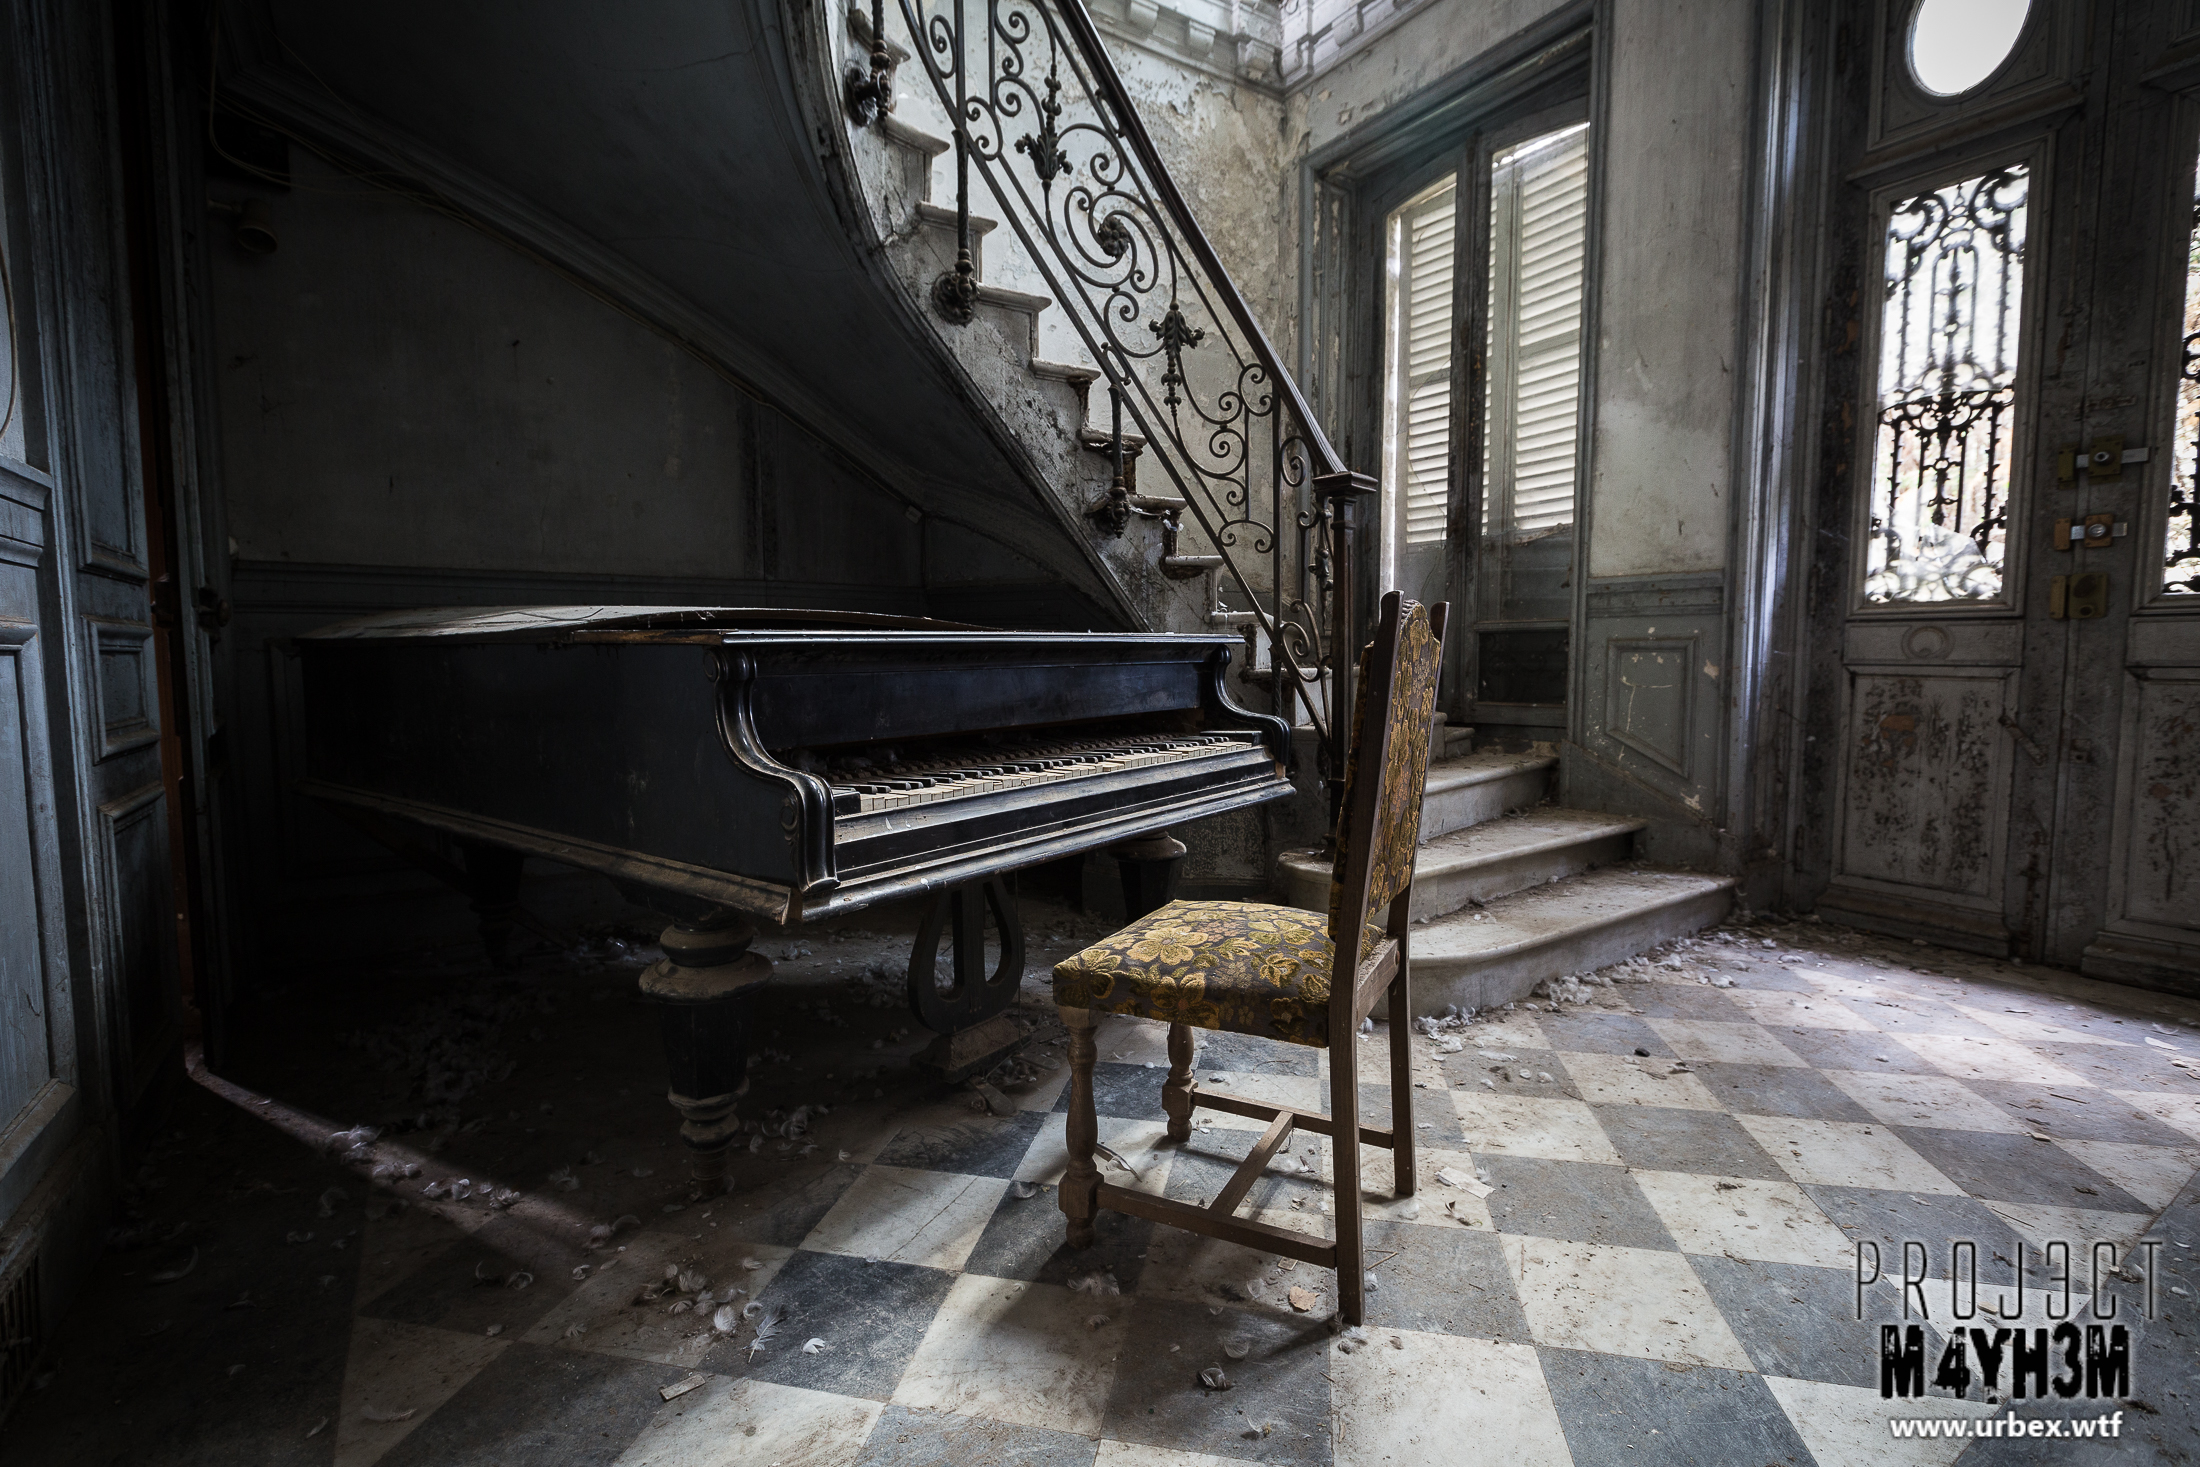 A rotting Piano in an empty Château